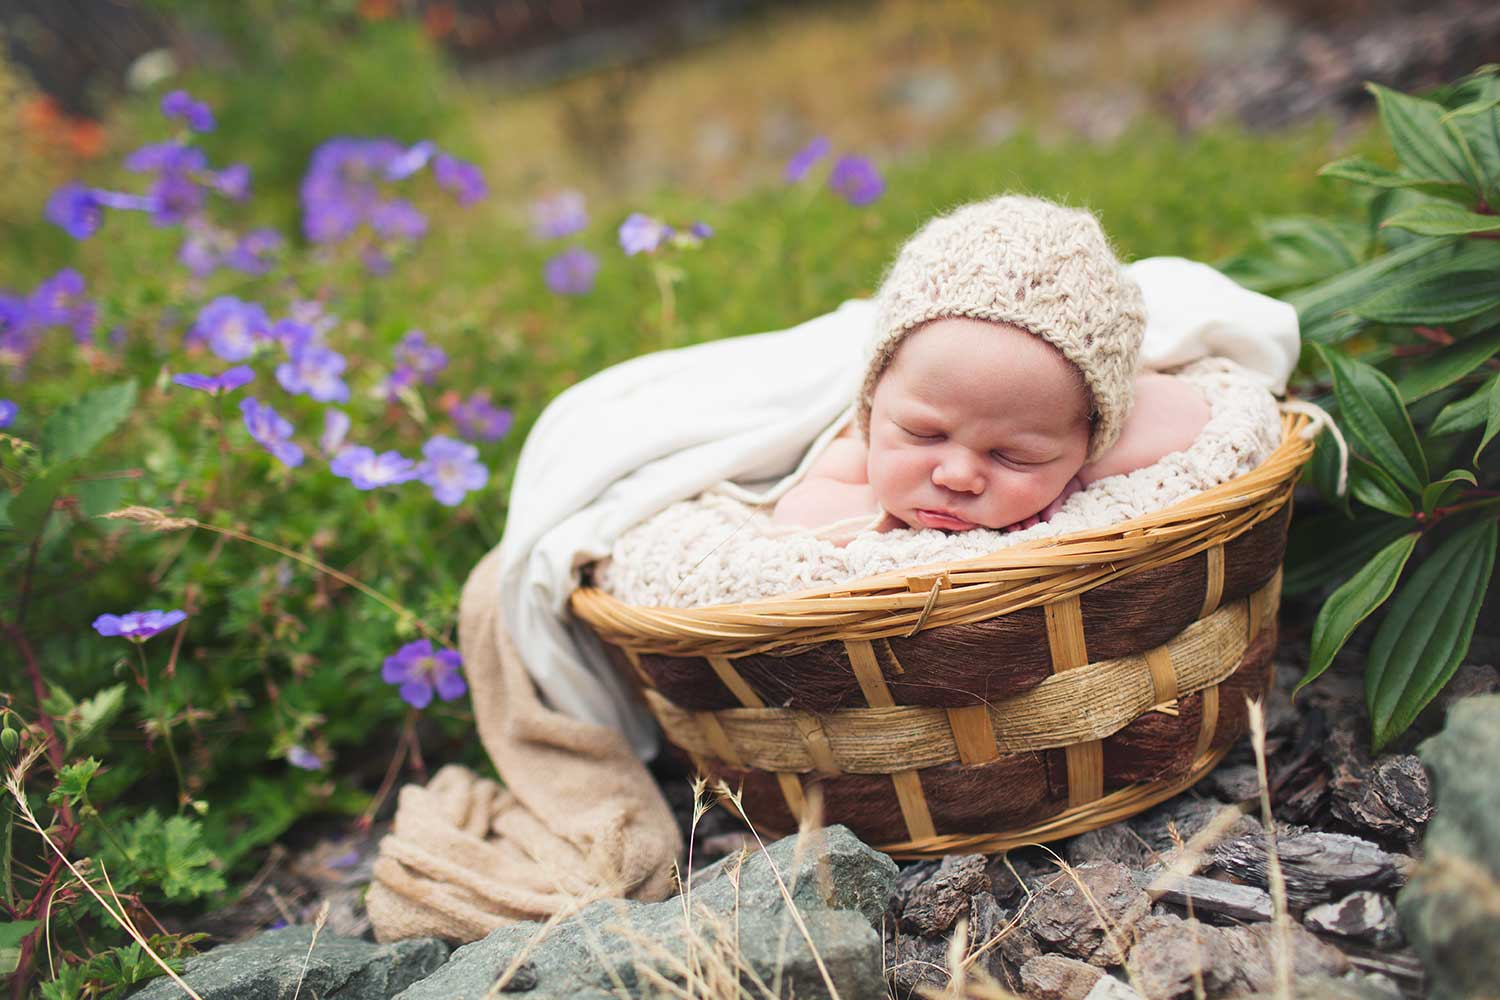 Sleeping infant snuggled in a basket with blankets and a knit hat with a garden and purple flowers in the background.